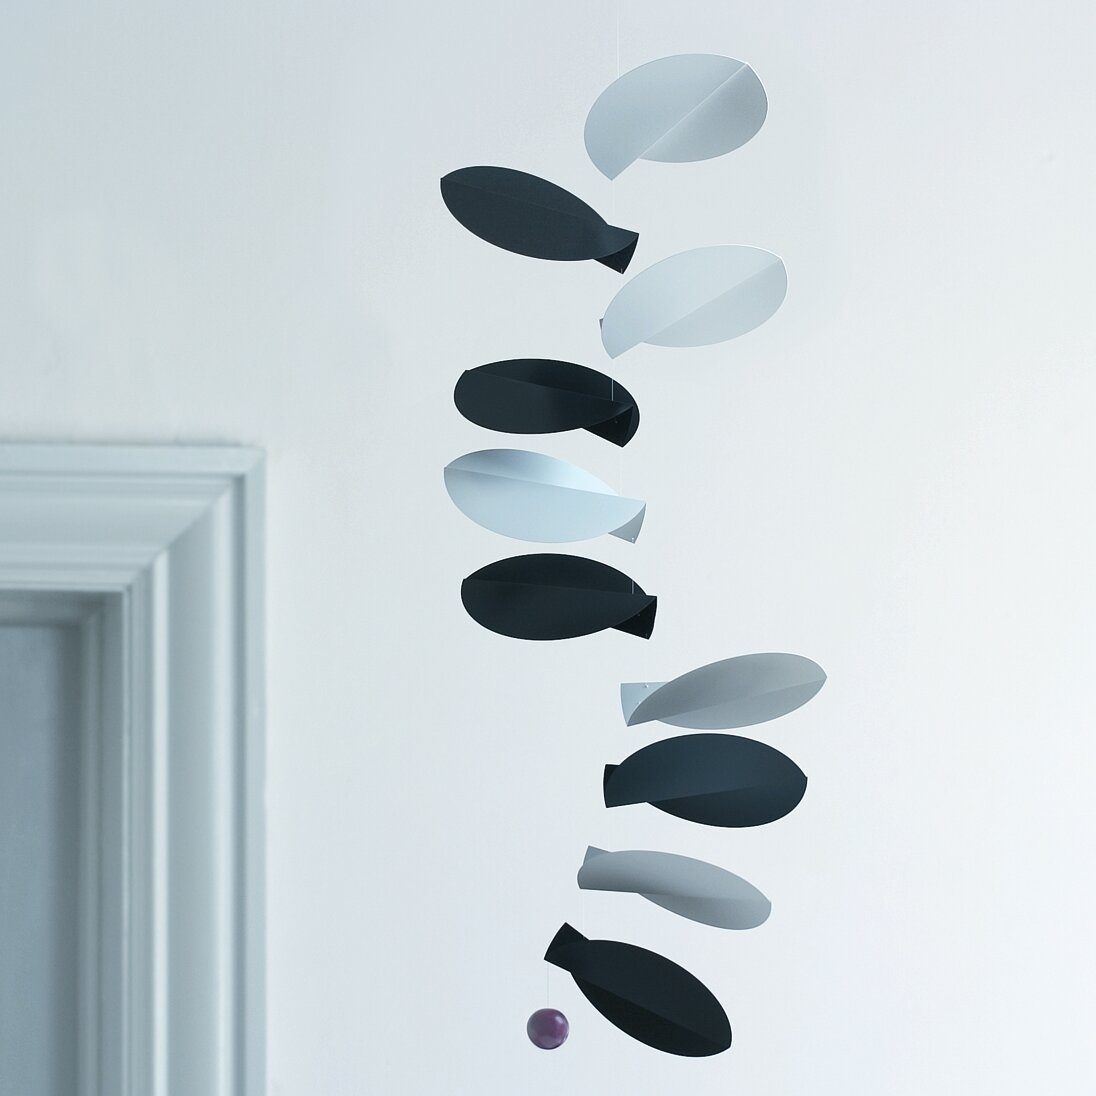 Flensted mobiles abstract turning leaves mobile reviews - Flensted mobiles ...